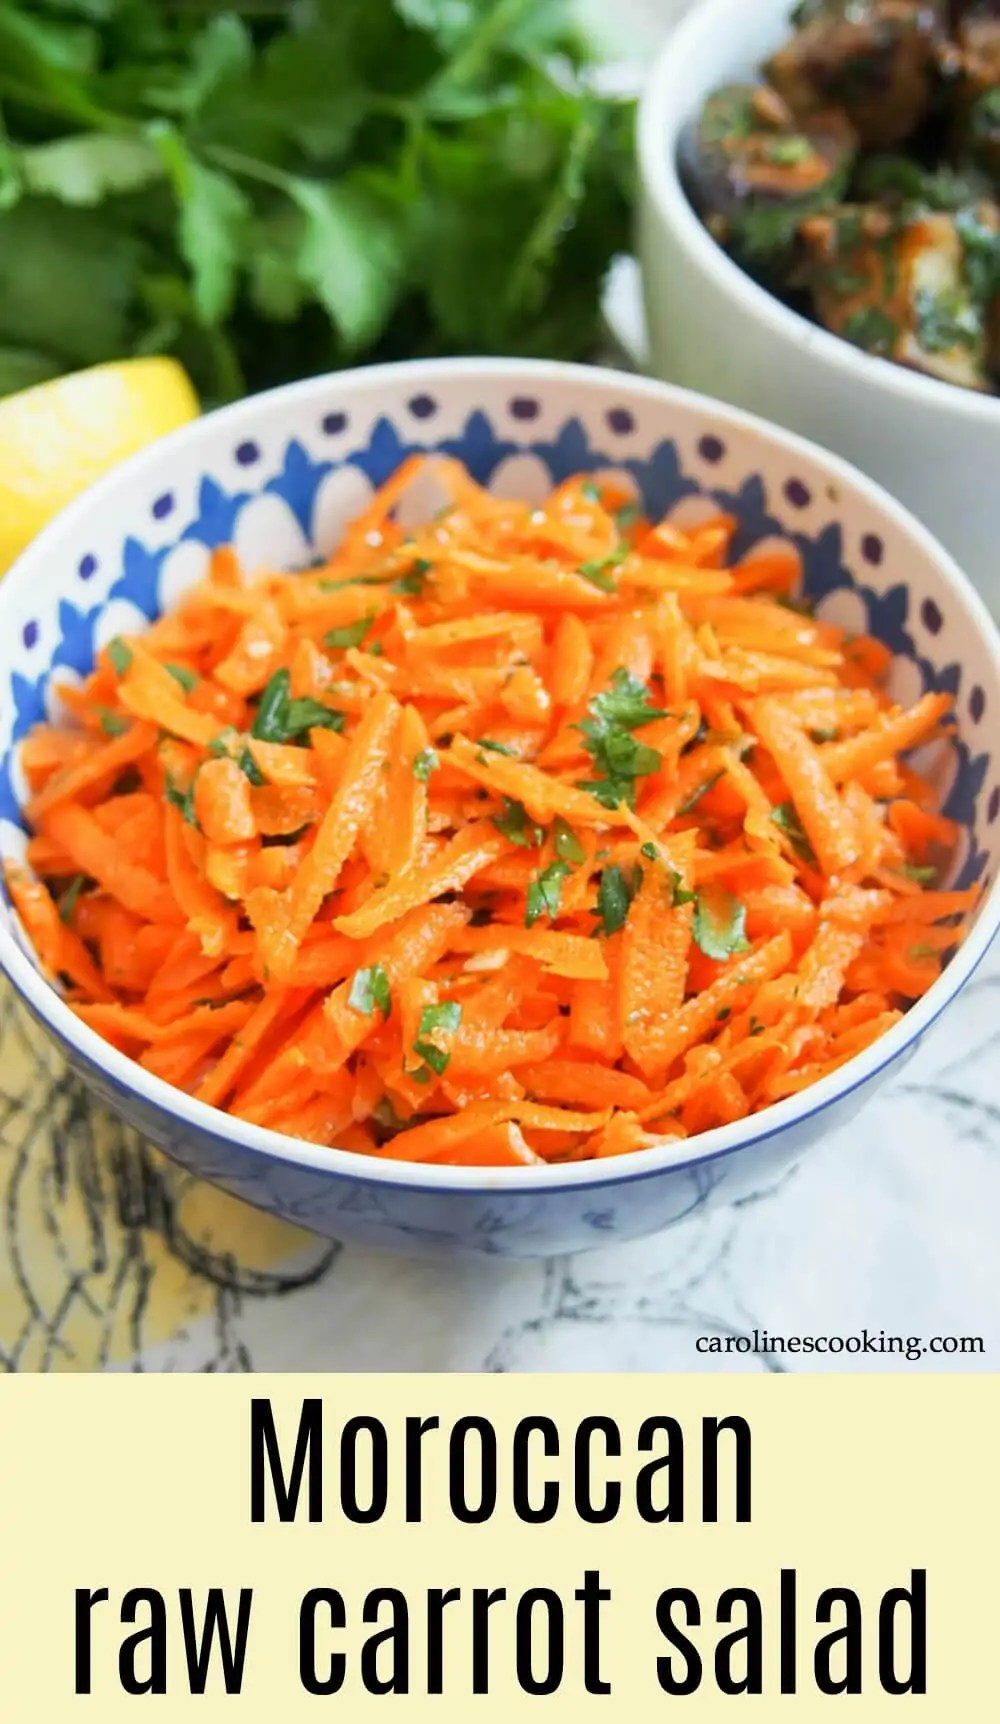 This Moroccan raw carrot salad takes only a few minutes to make, has a short list of ingredients and is packed with flavor. Perfect alongside other dishes as part of lunch, mezze and more. #carrotsalad #mezze #vegansalad #Moroccansalad